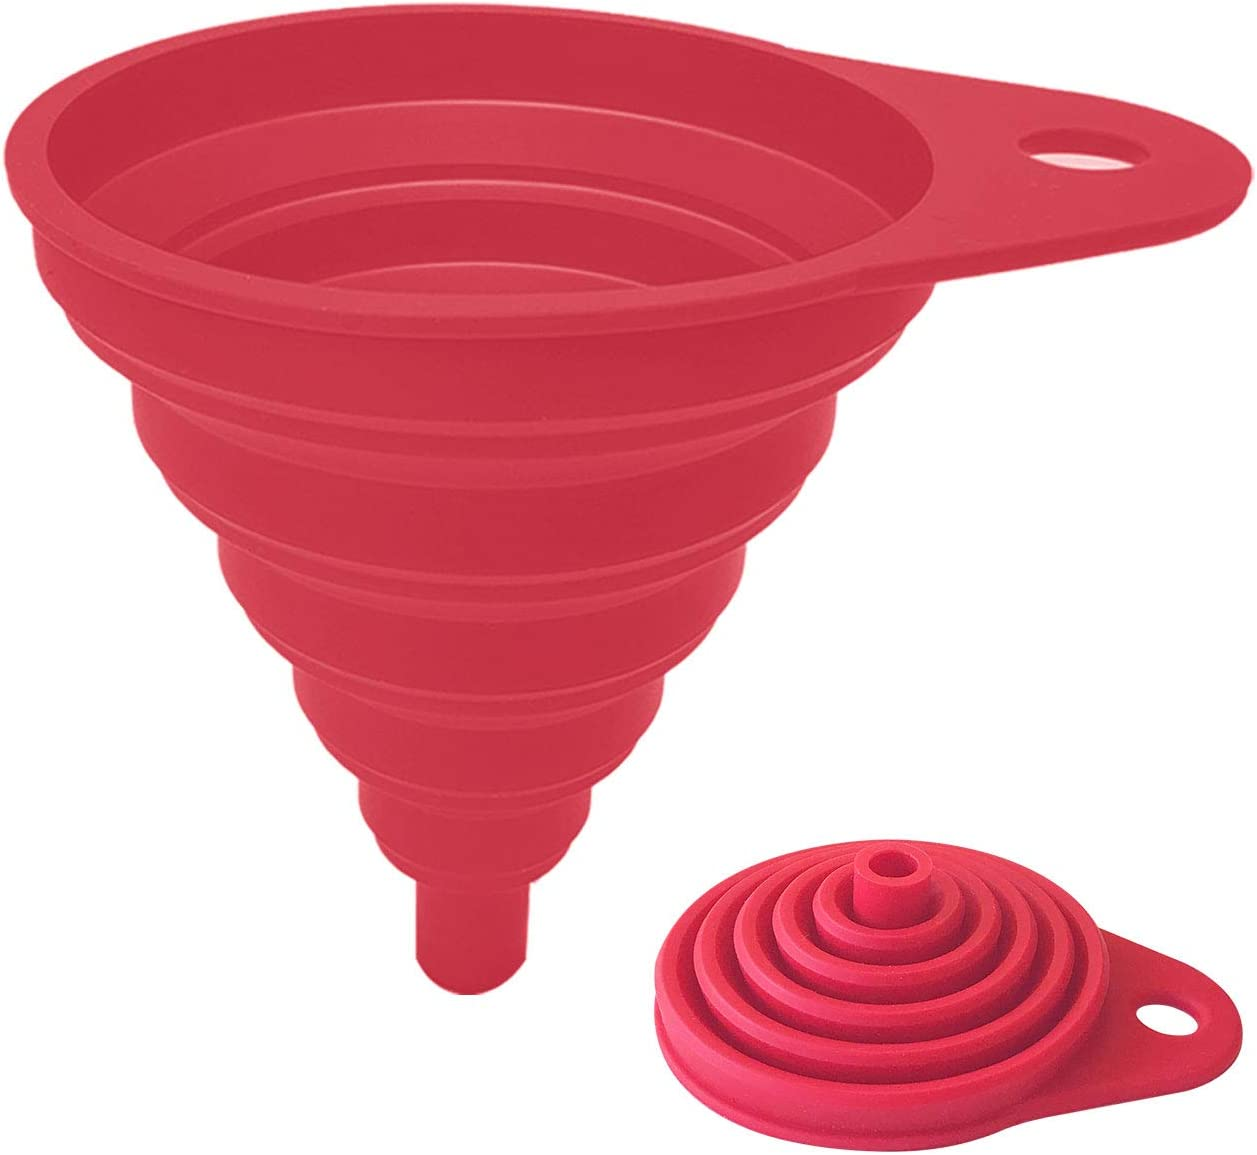 Funnels for Kitchen Use, Kitchen Funnels for Filling Bottles, Food Grade Collapsible Funnel, Silicone Food Funnel for Liquids and Oil(1Pack Red)